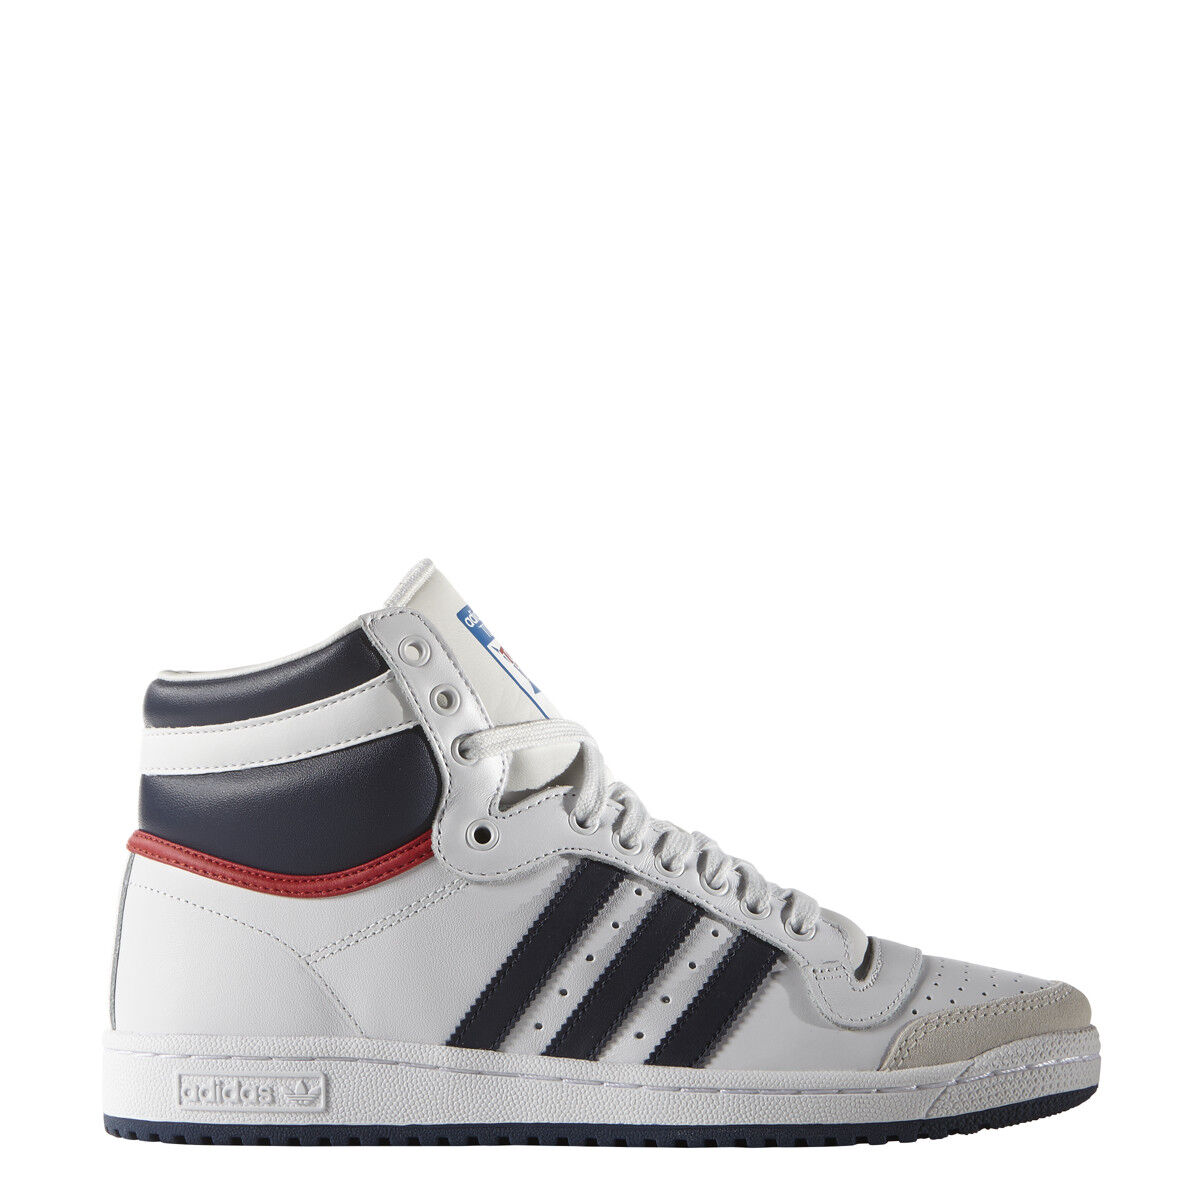 New Adidas Men's Originals Top Ten High OG Shoes (D65161) White Navy Red